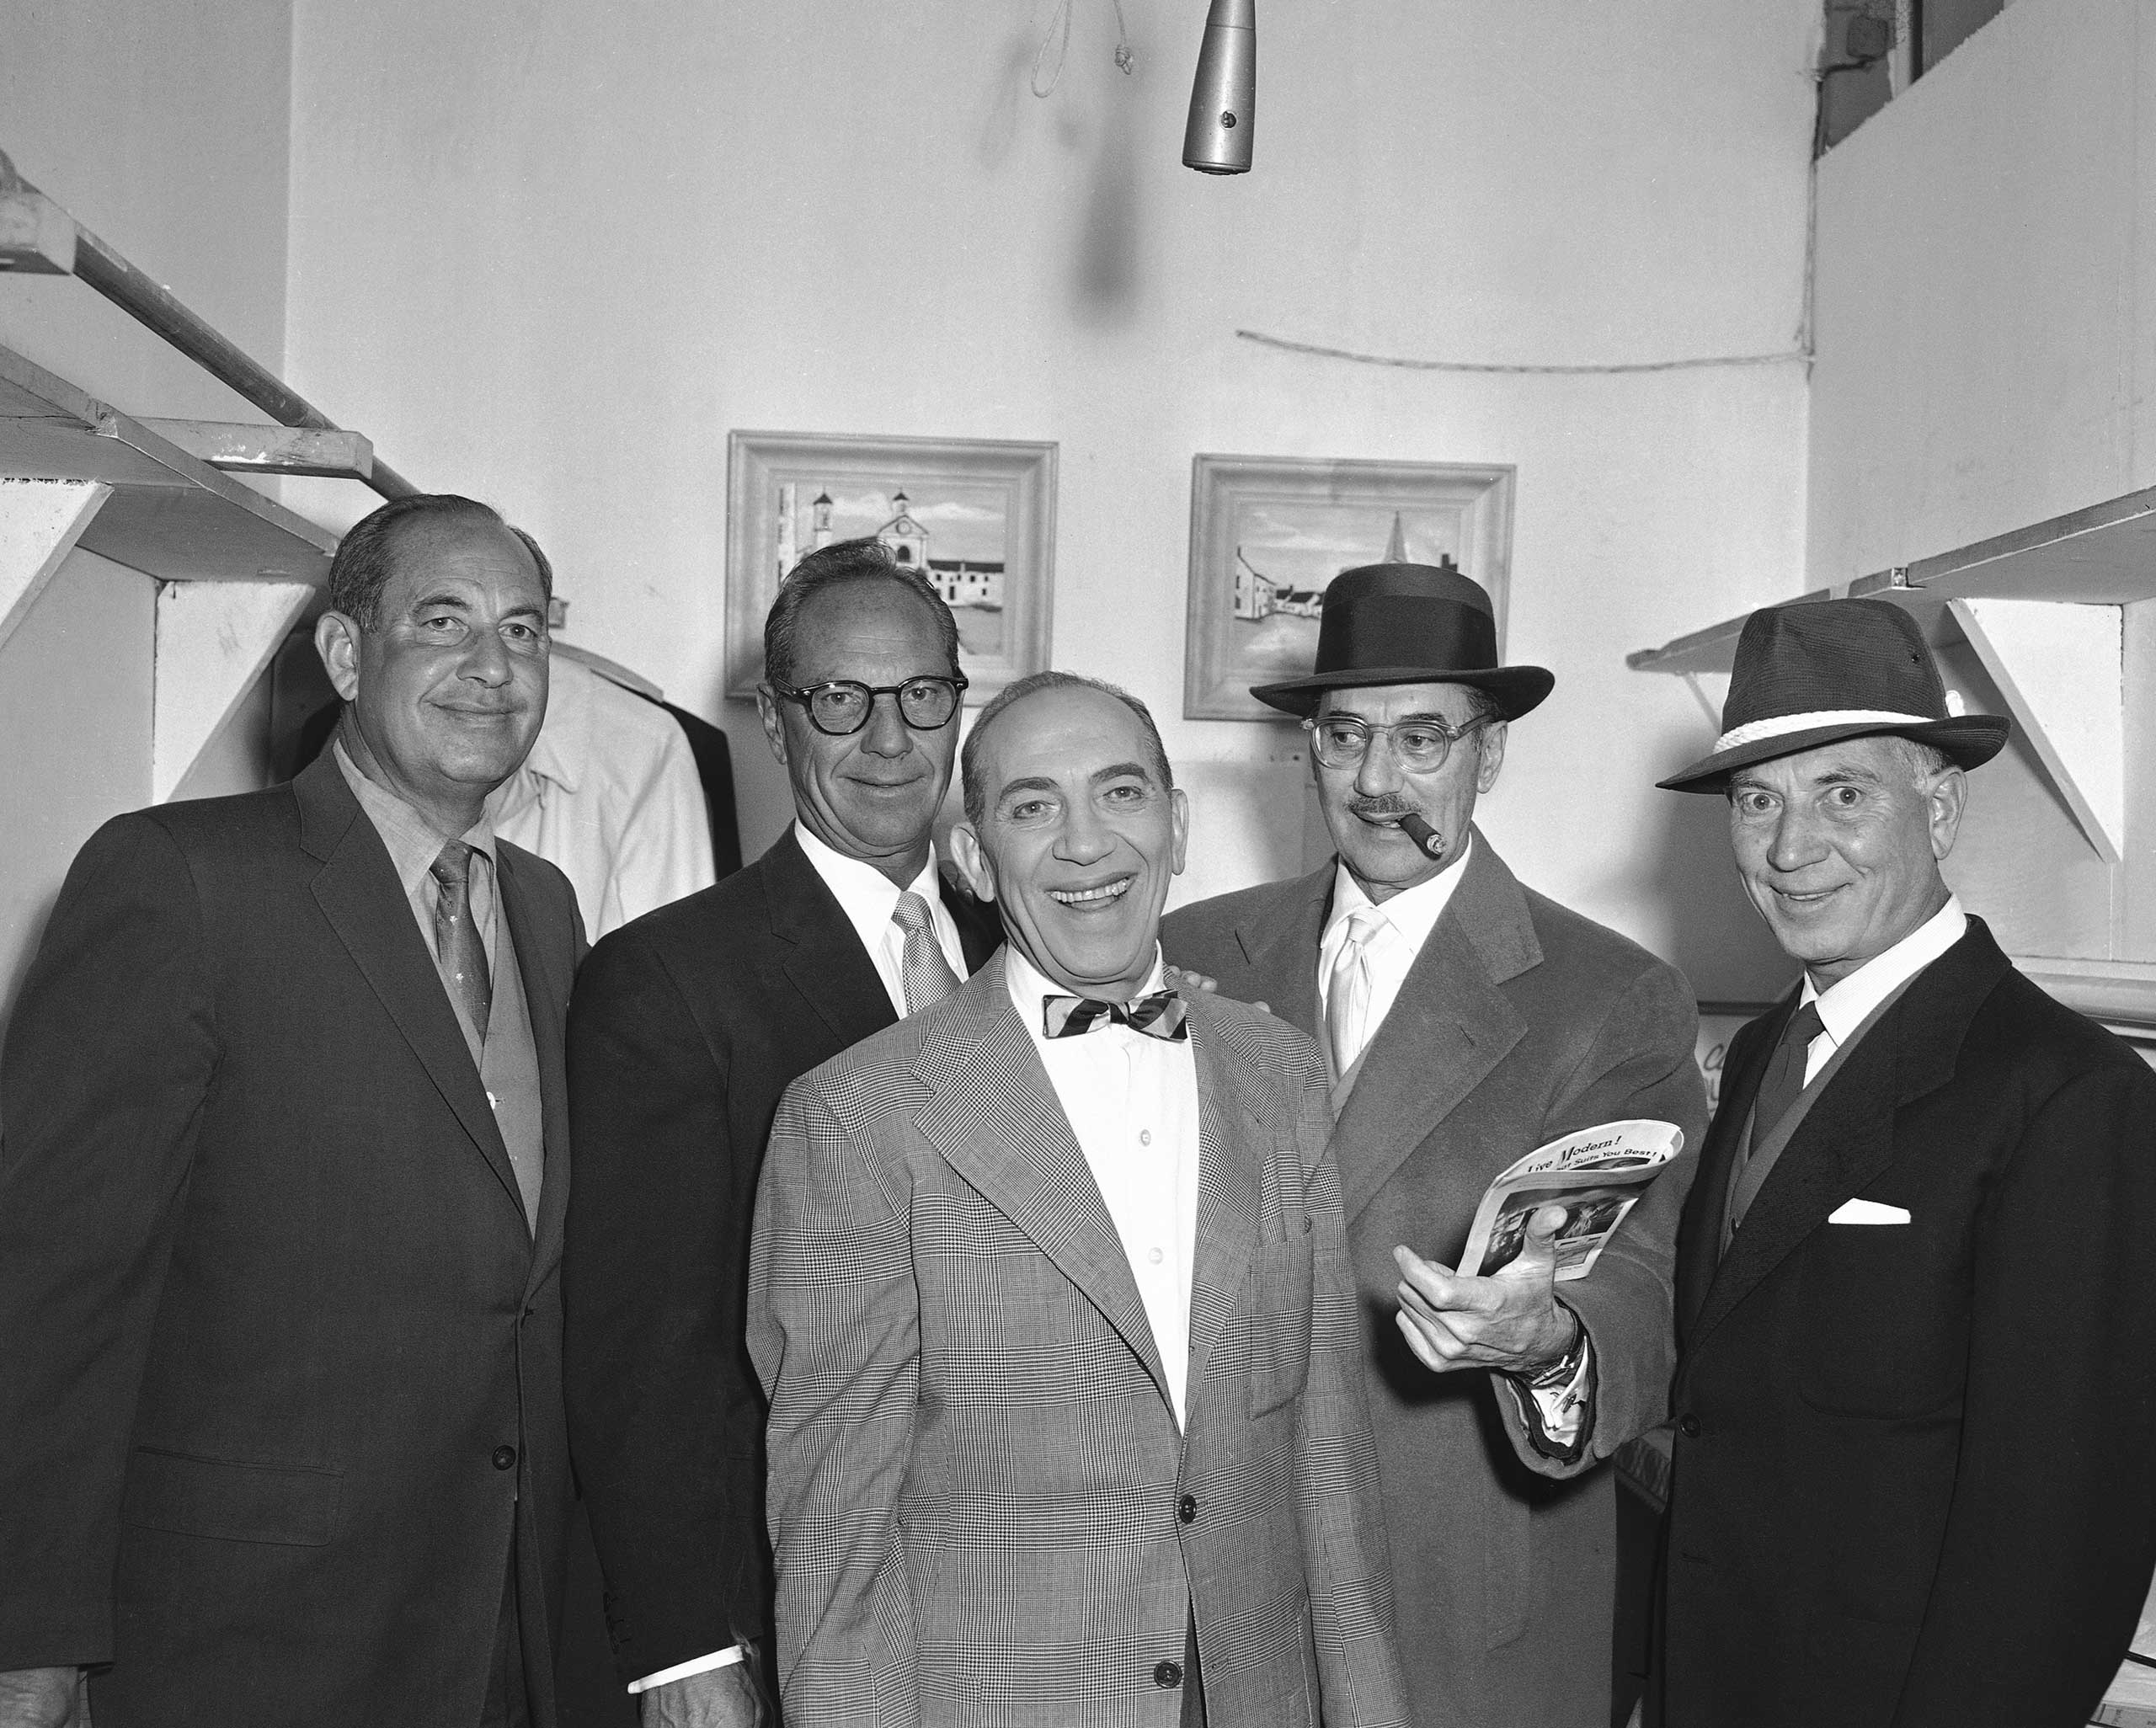 THE MARX BROTHERS: From left, Gummo, Zeppo, Chico, Groucho and Harpo pose for a family photo in 1957. Though he appeared in seven of the brothers' films, Zeppo abandoned performing to become an agent.